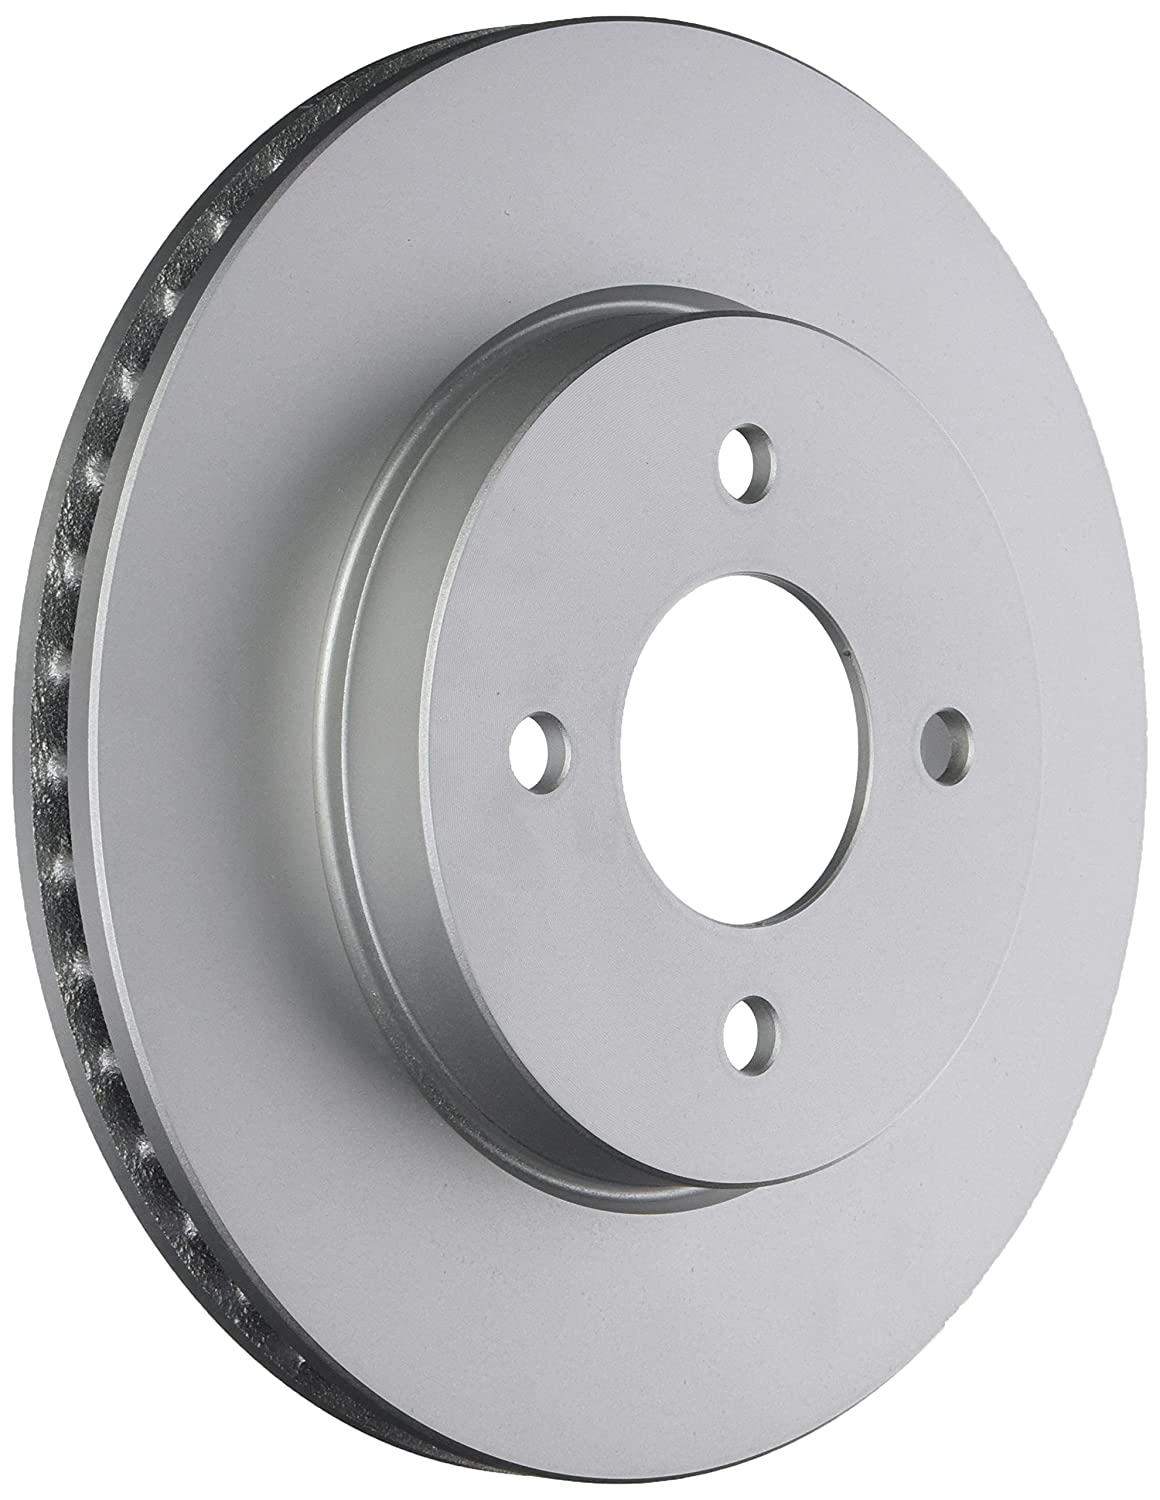 Bosch 40011605 Front QuietCast Premium Disc Brake Rotor For Select 2012-2015 Nissan Versa Vehicles